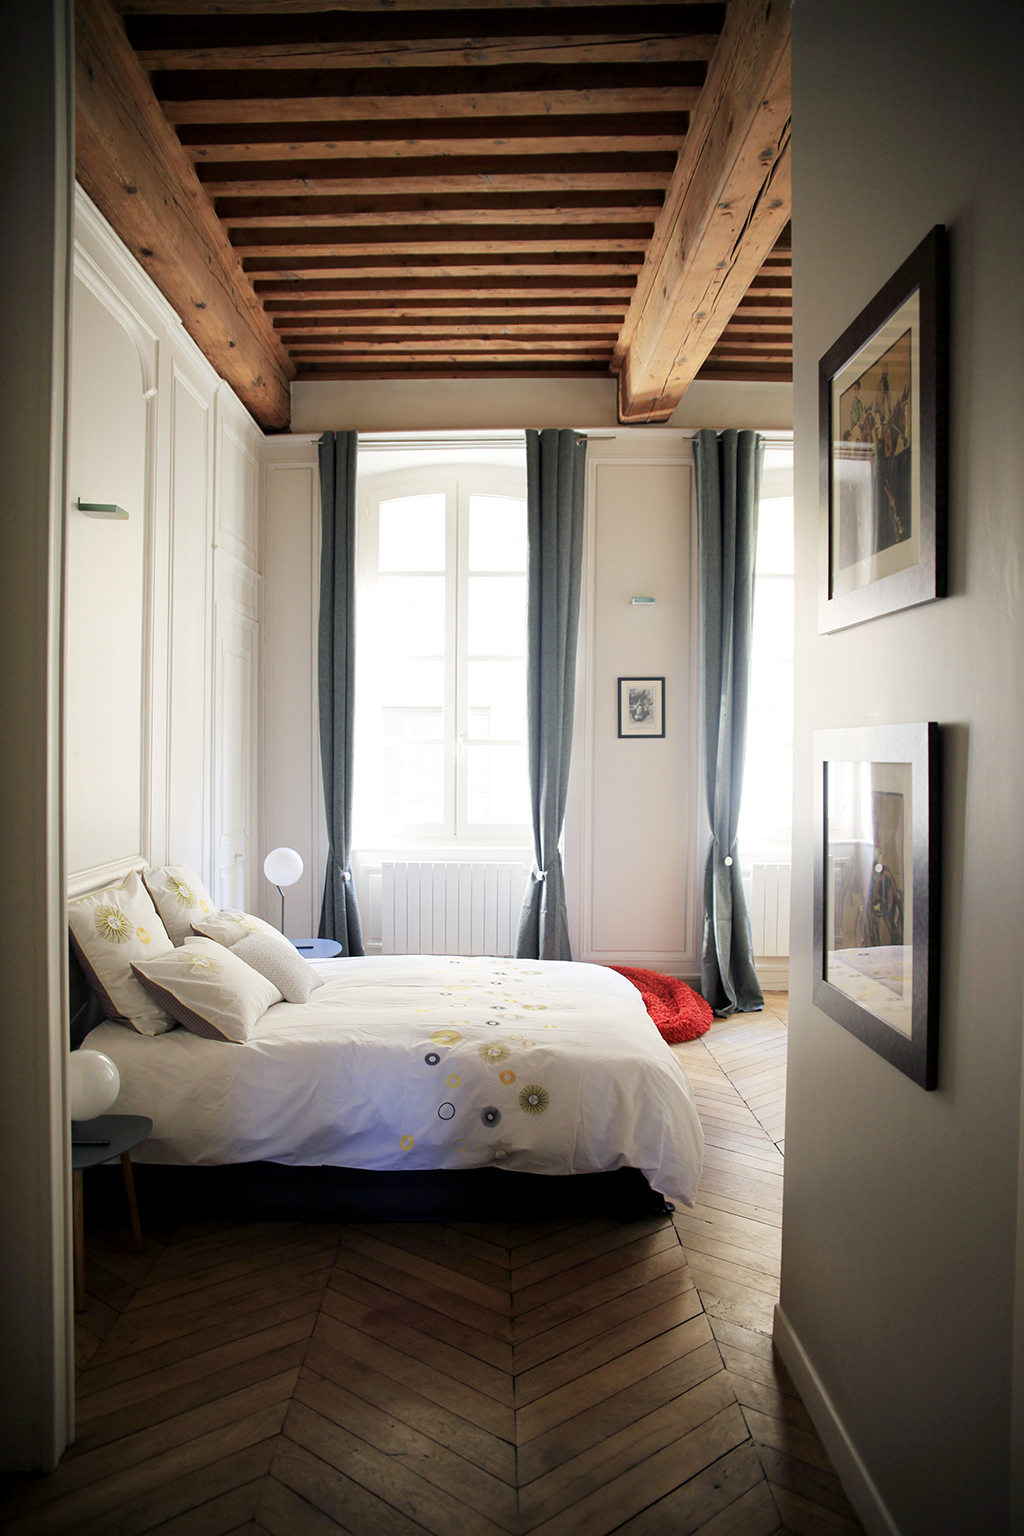 Un appartement transformé place Satonay, Lyon - Photo : Cillia Ciabrini